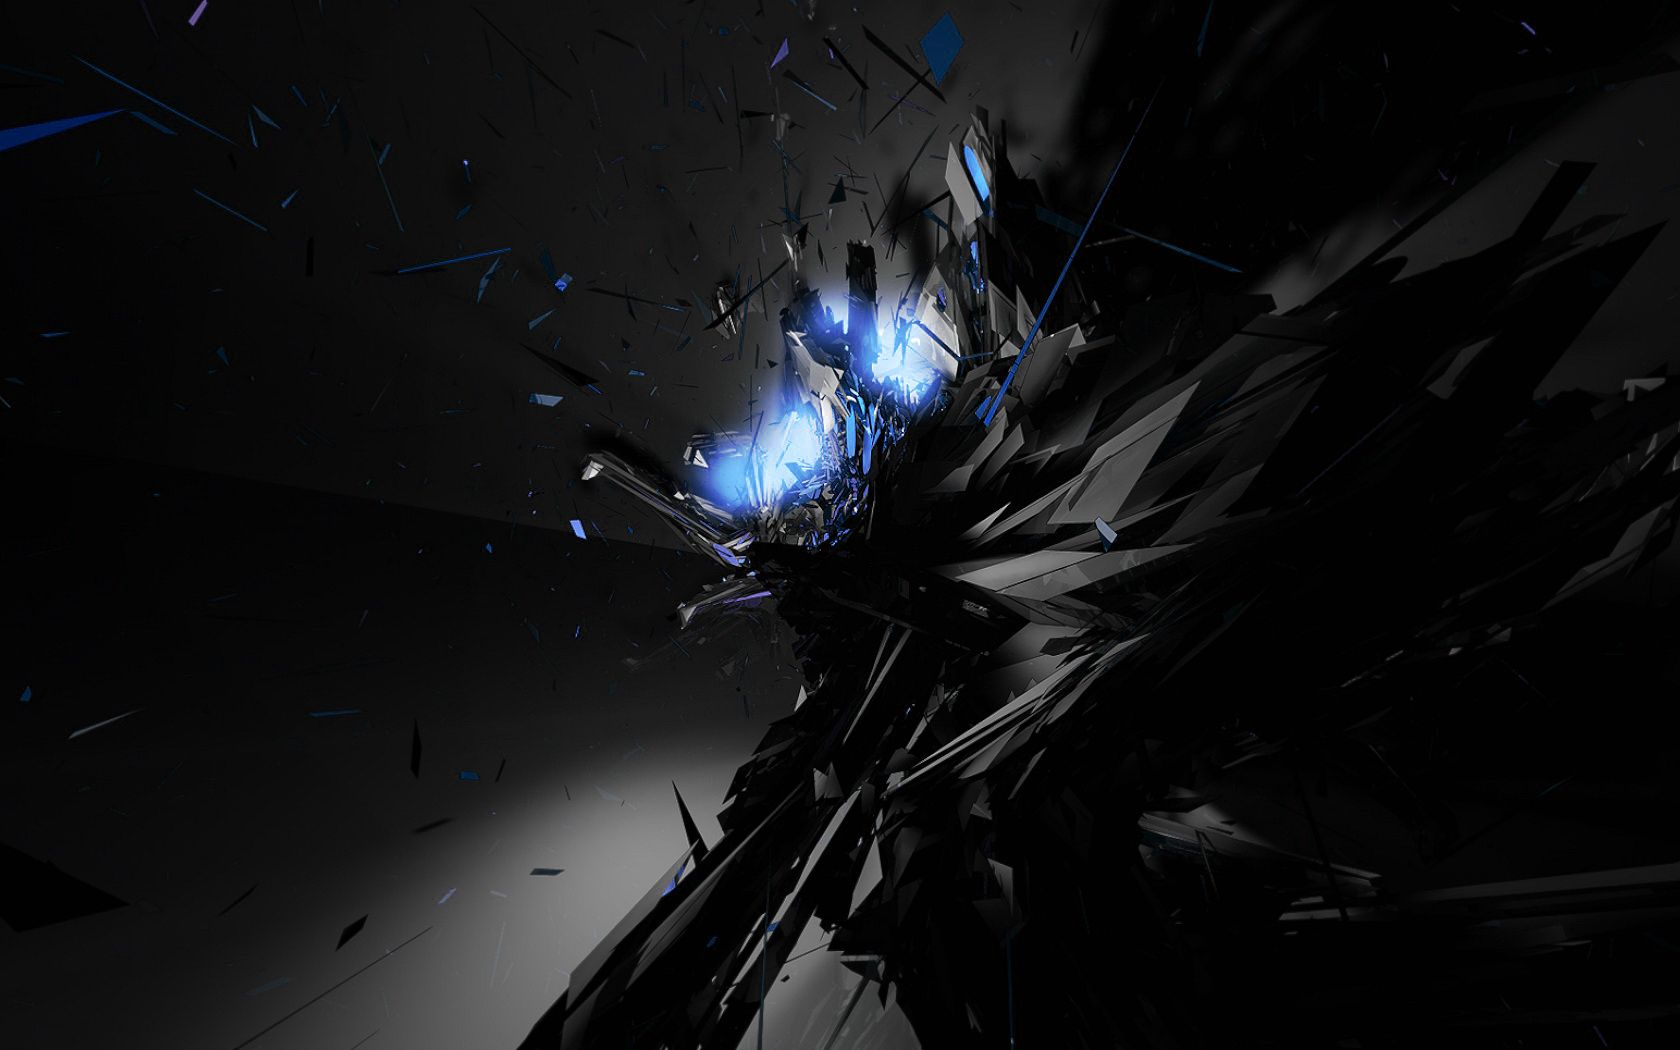 Black Abstract Art Background